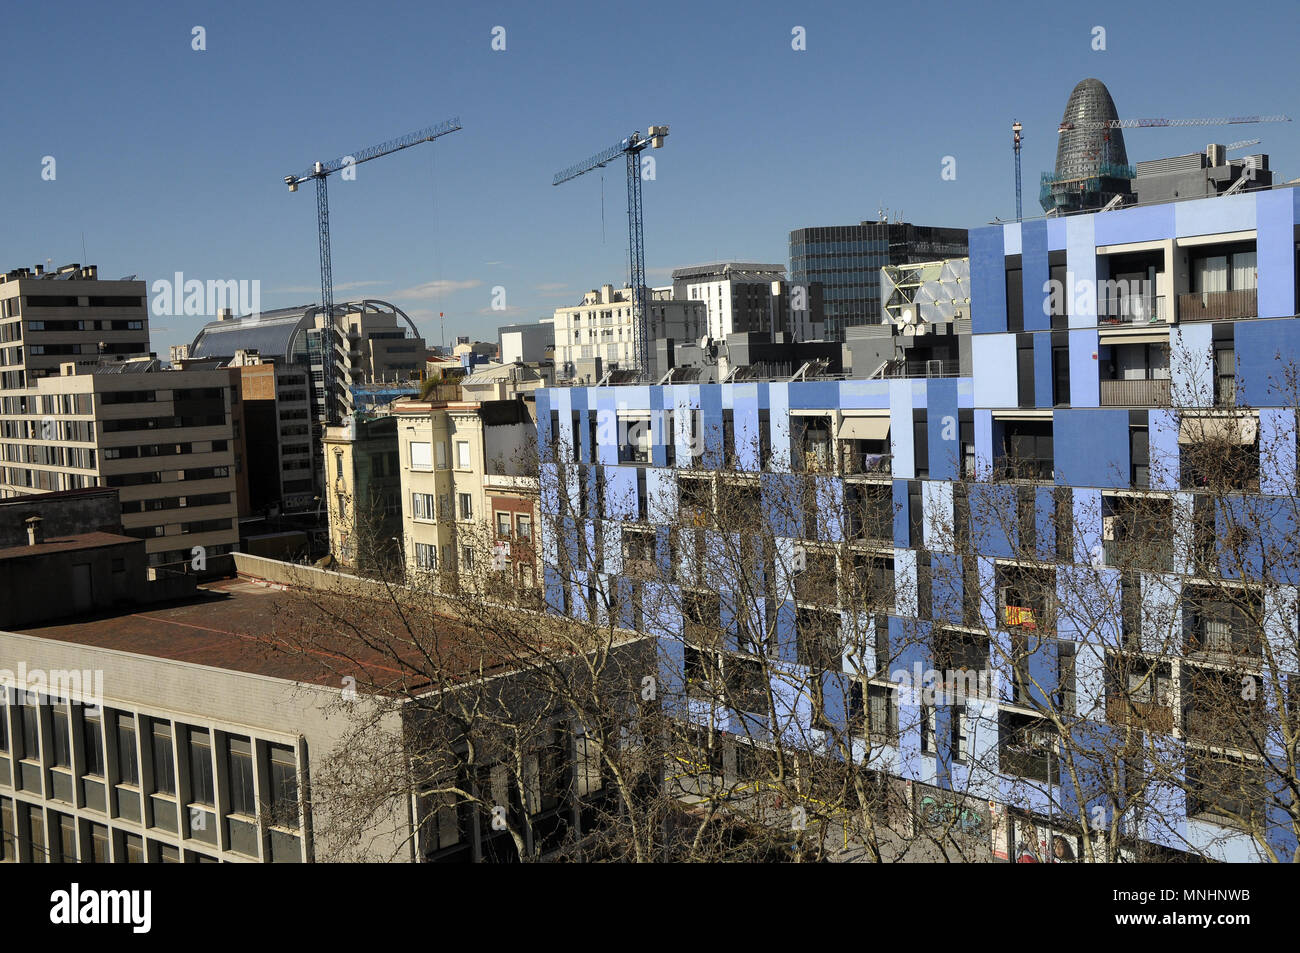 VIEW OF BUILDINGS at POBLE NOU DISTRICT BARCELONA - Stock Image